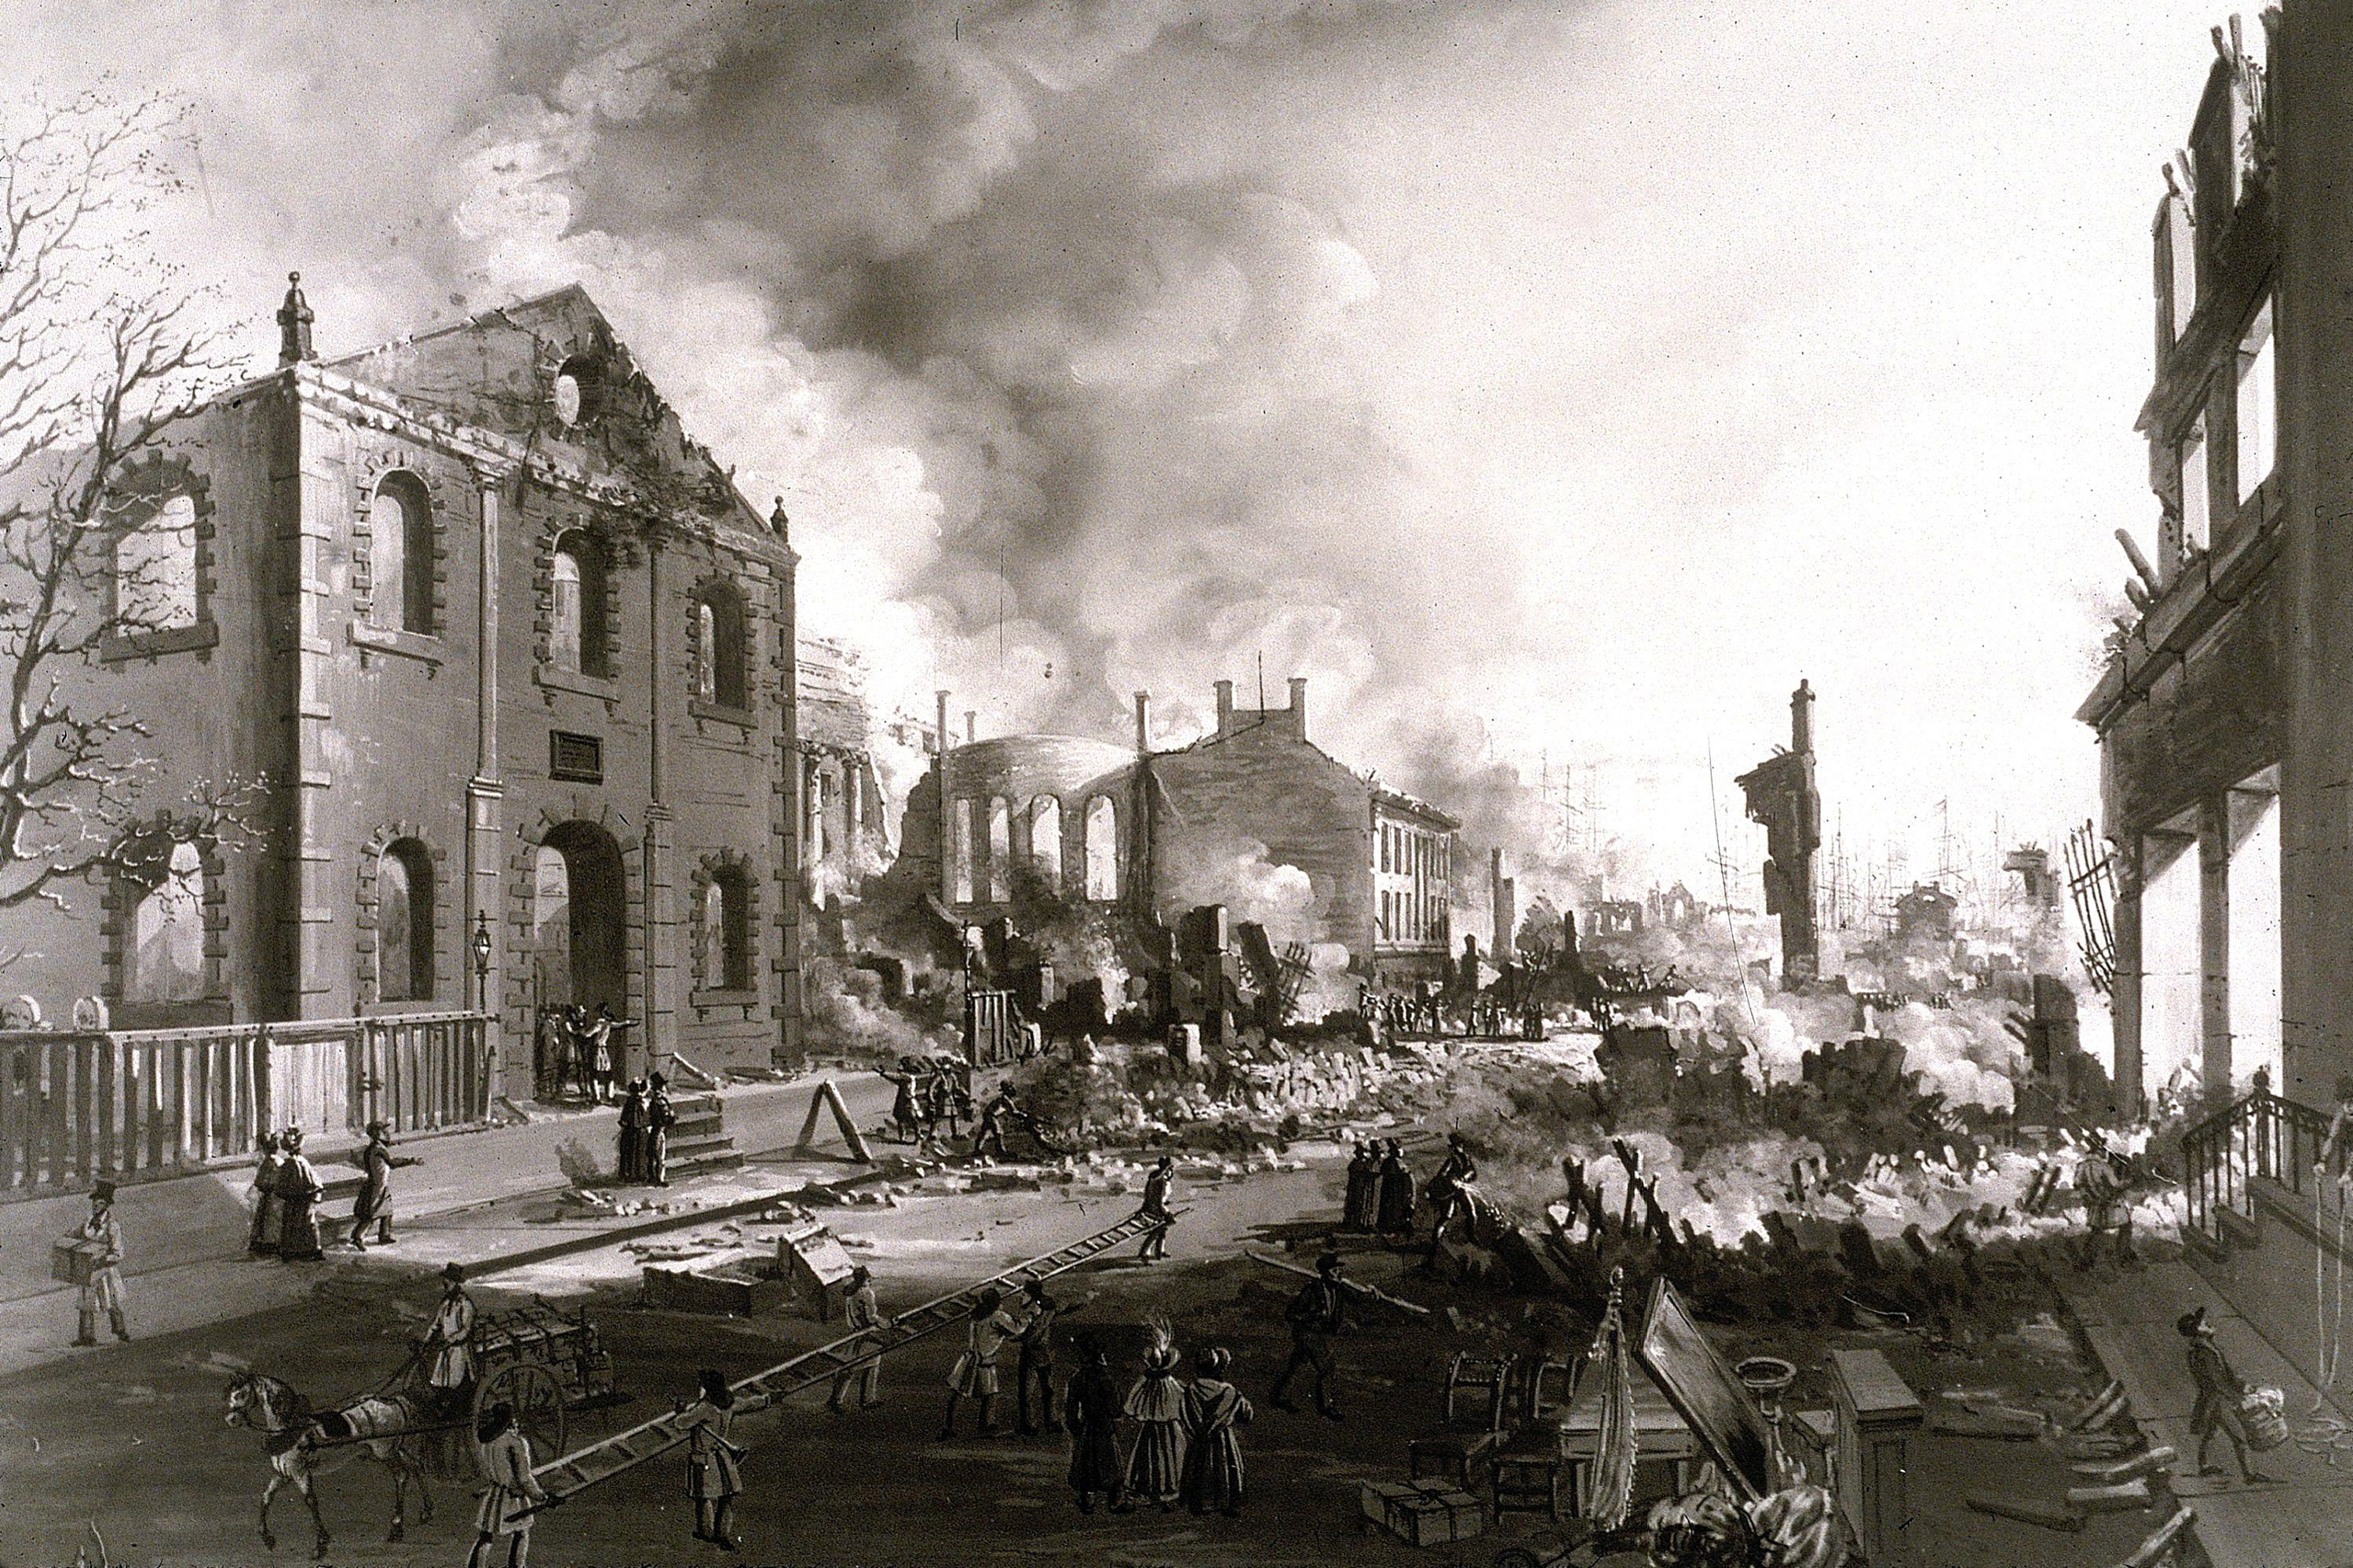 Print showing devastation from New York's Great Fire of 1835, which destroyed much of lower Manhattan